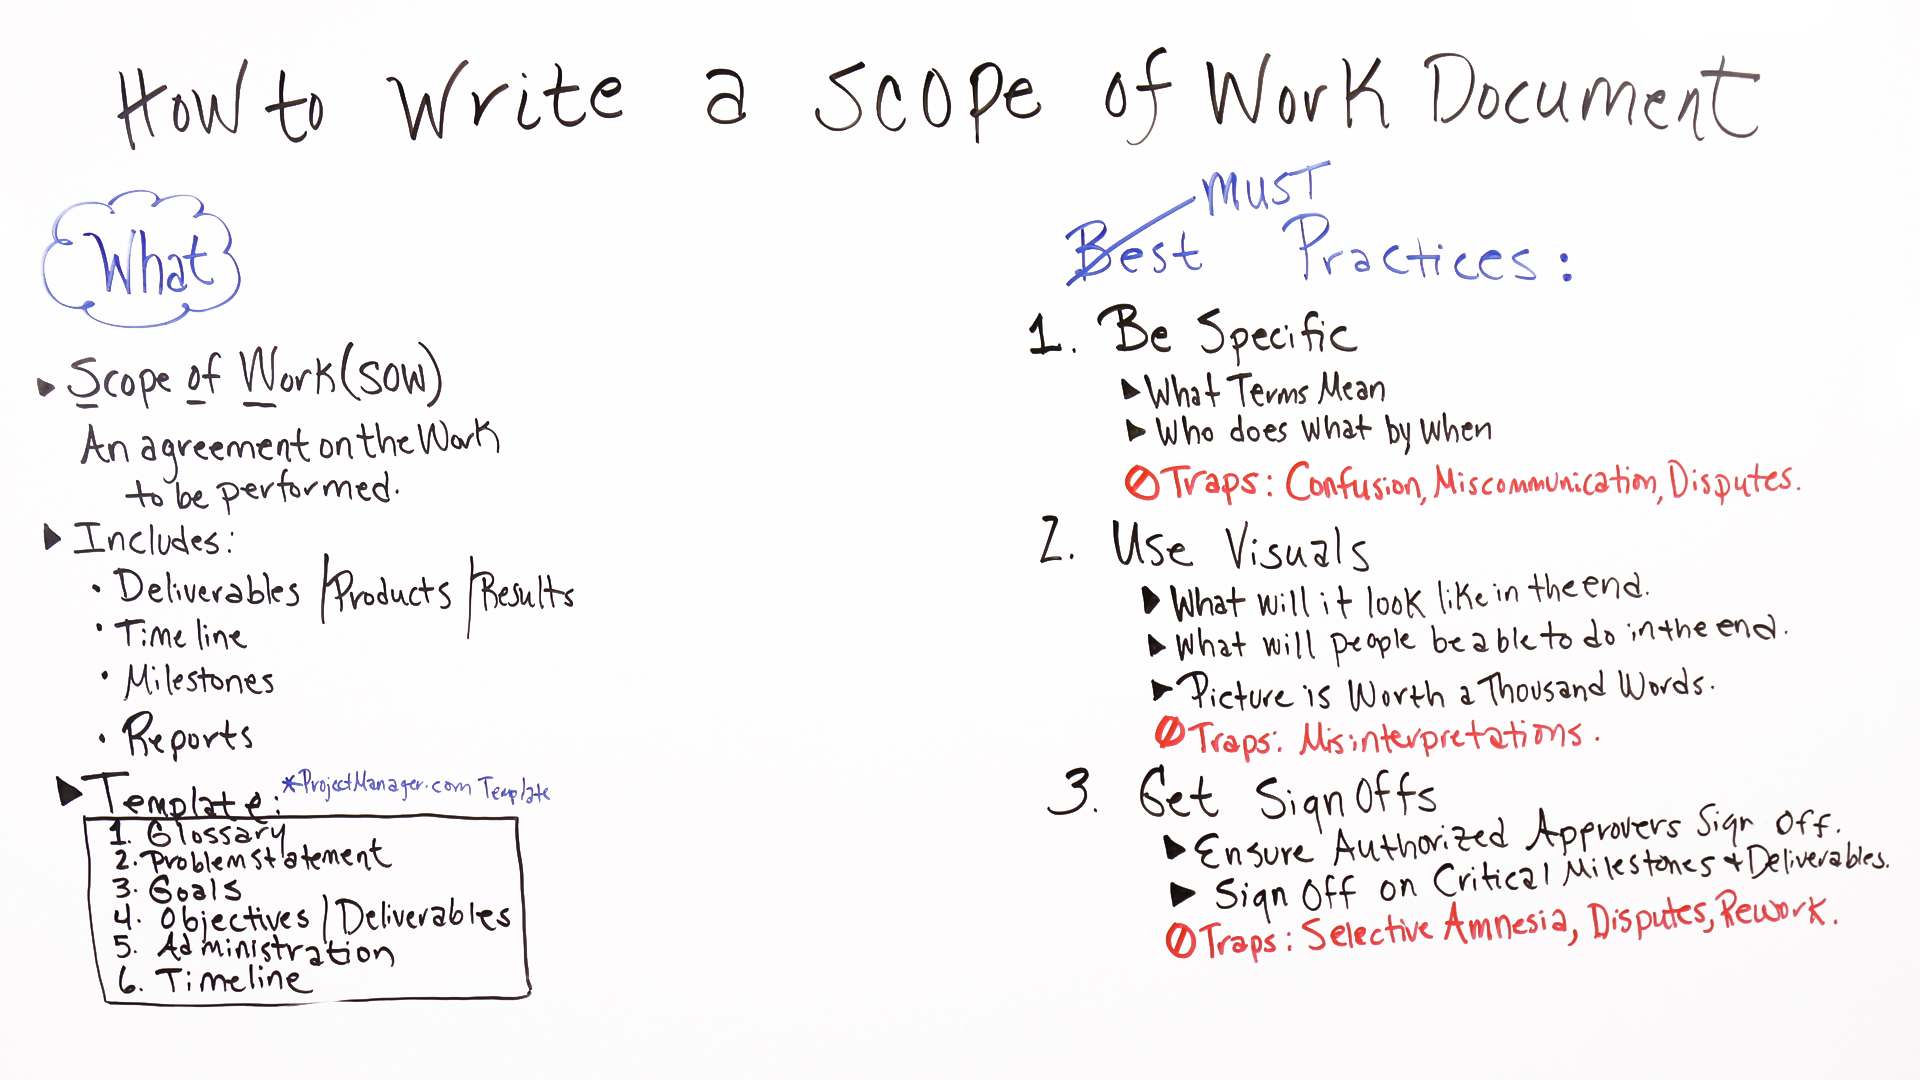 what is a scope of work document and what needs to be included in it